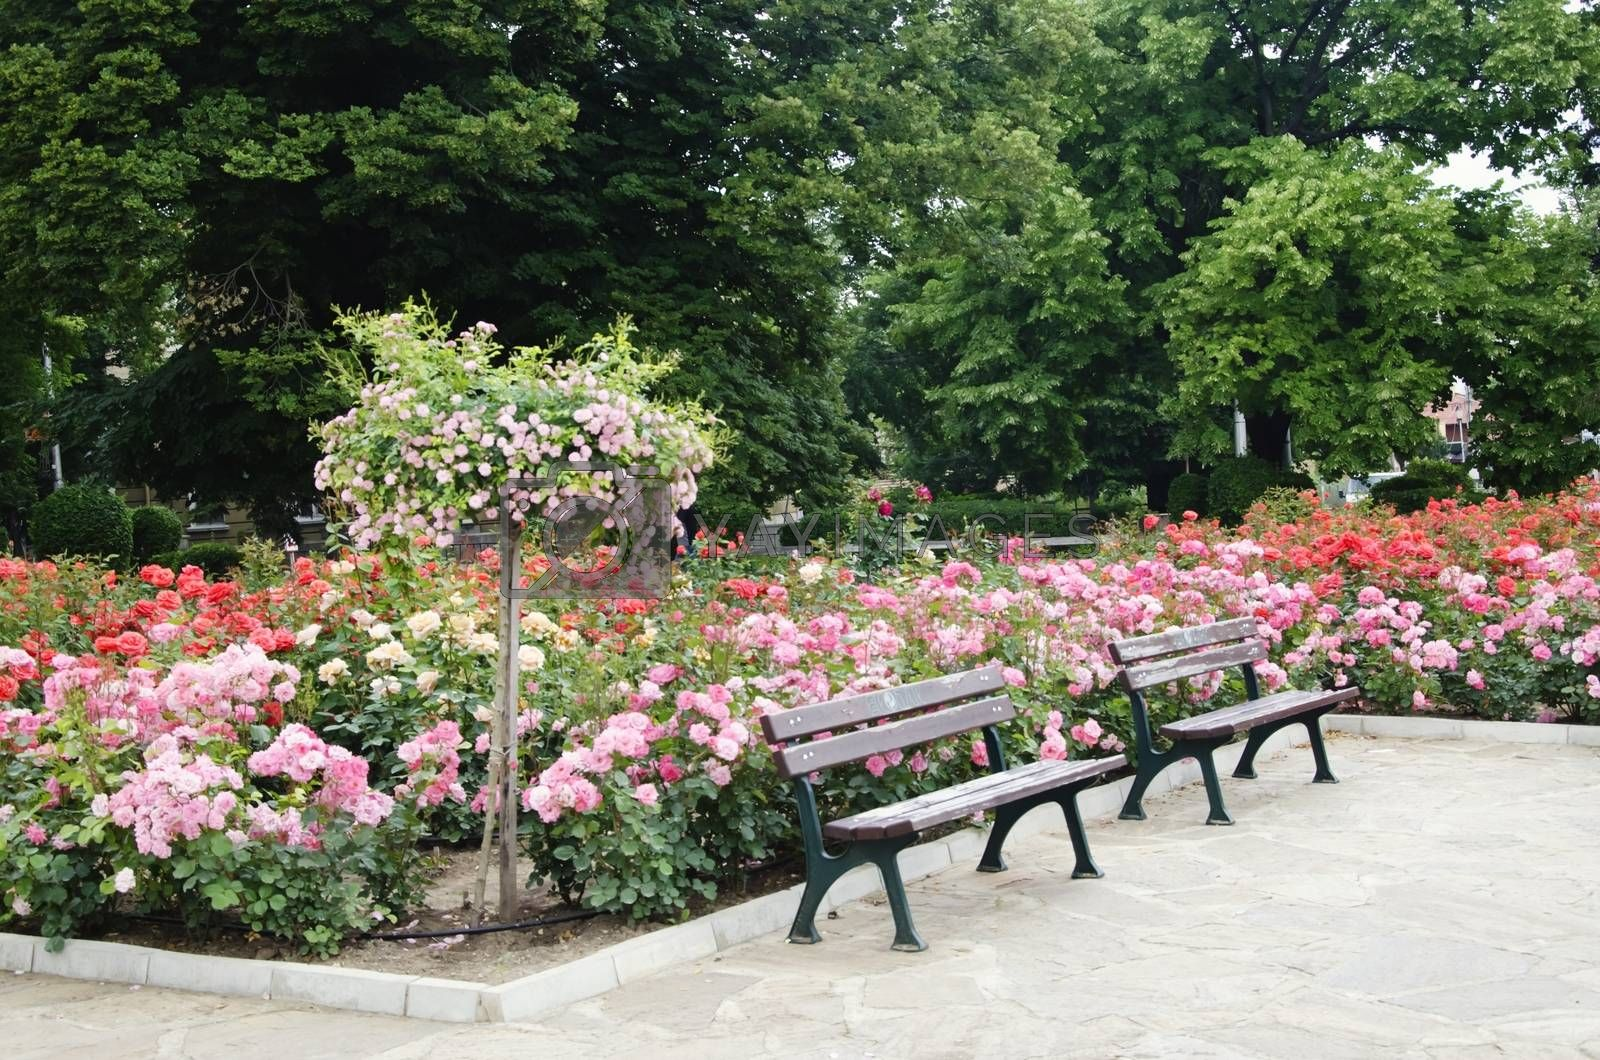 Photo of Multicolored Rose Park or Garden